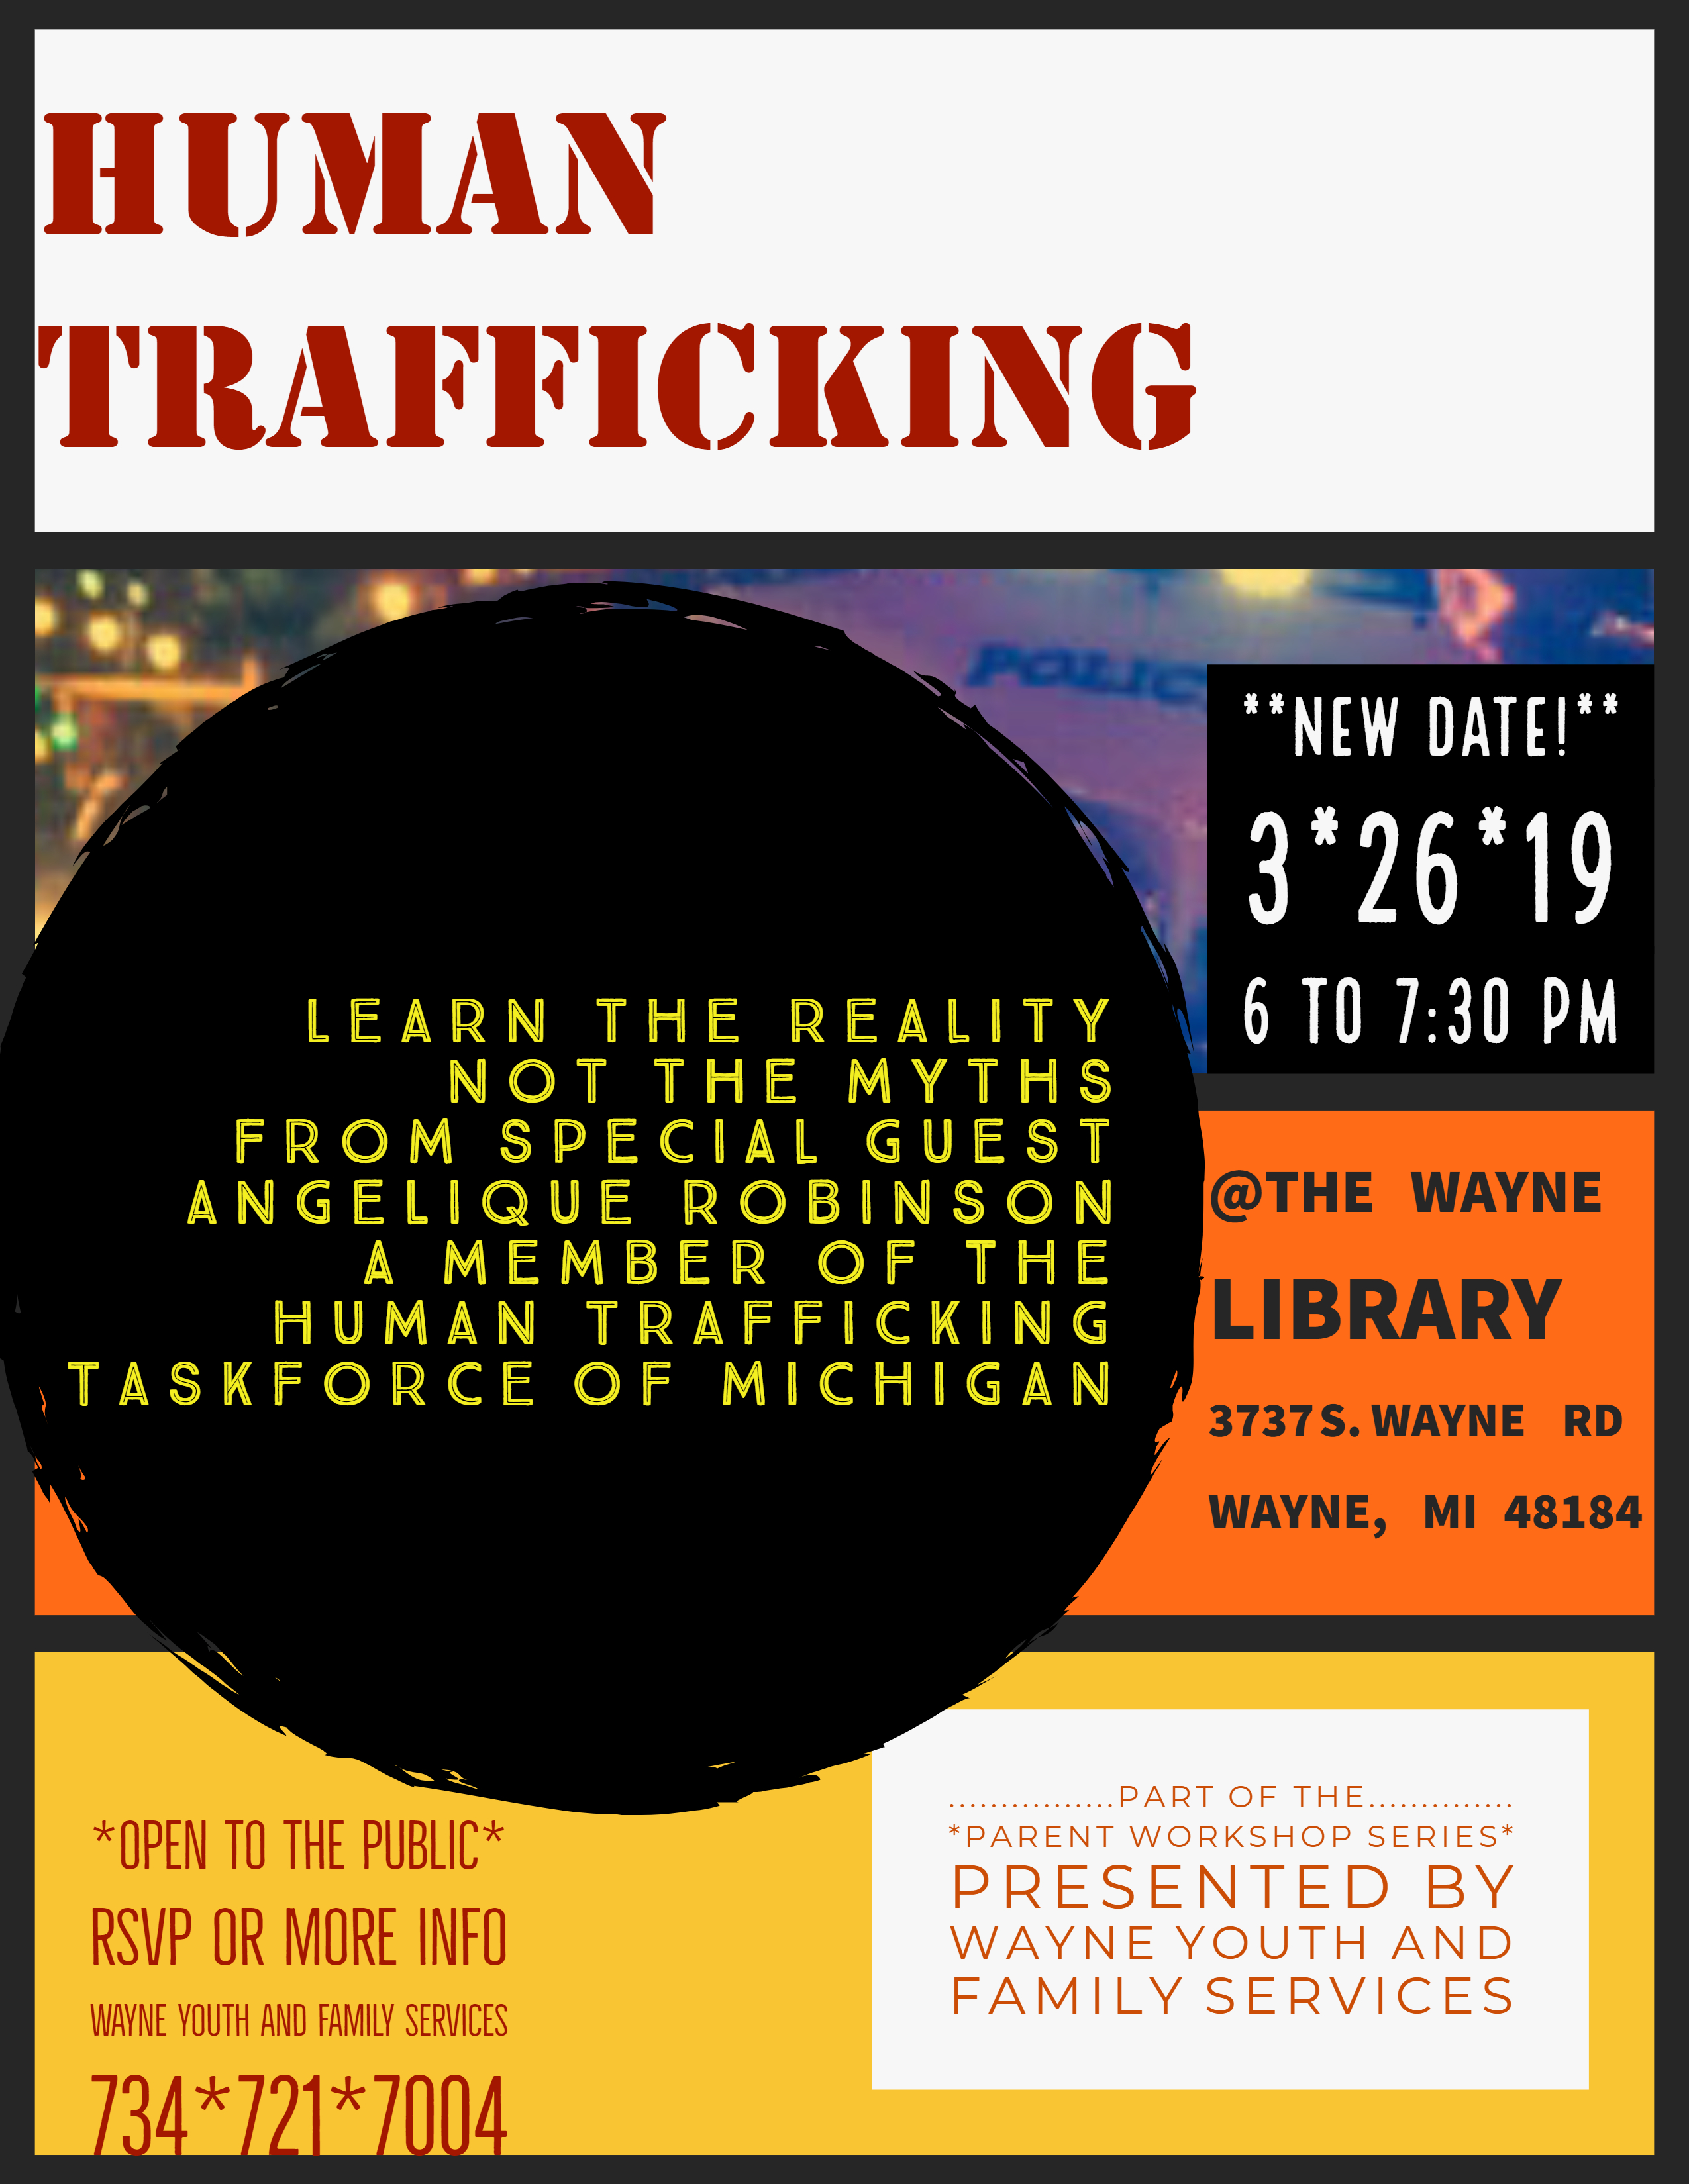 2019-03-26 - MARCH Human Trafficking